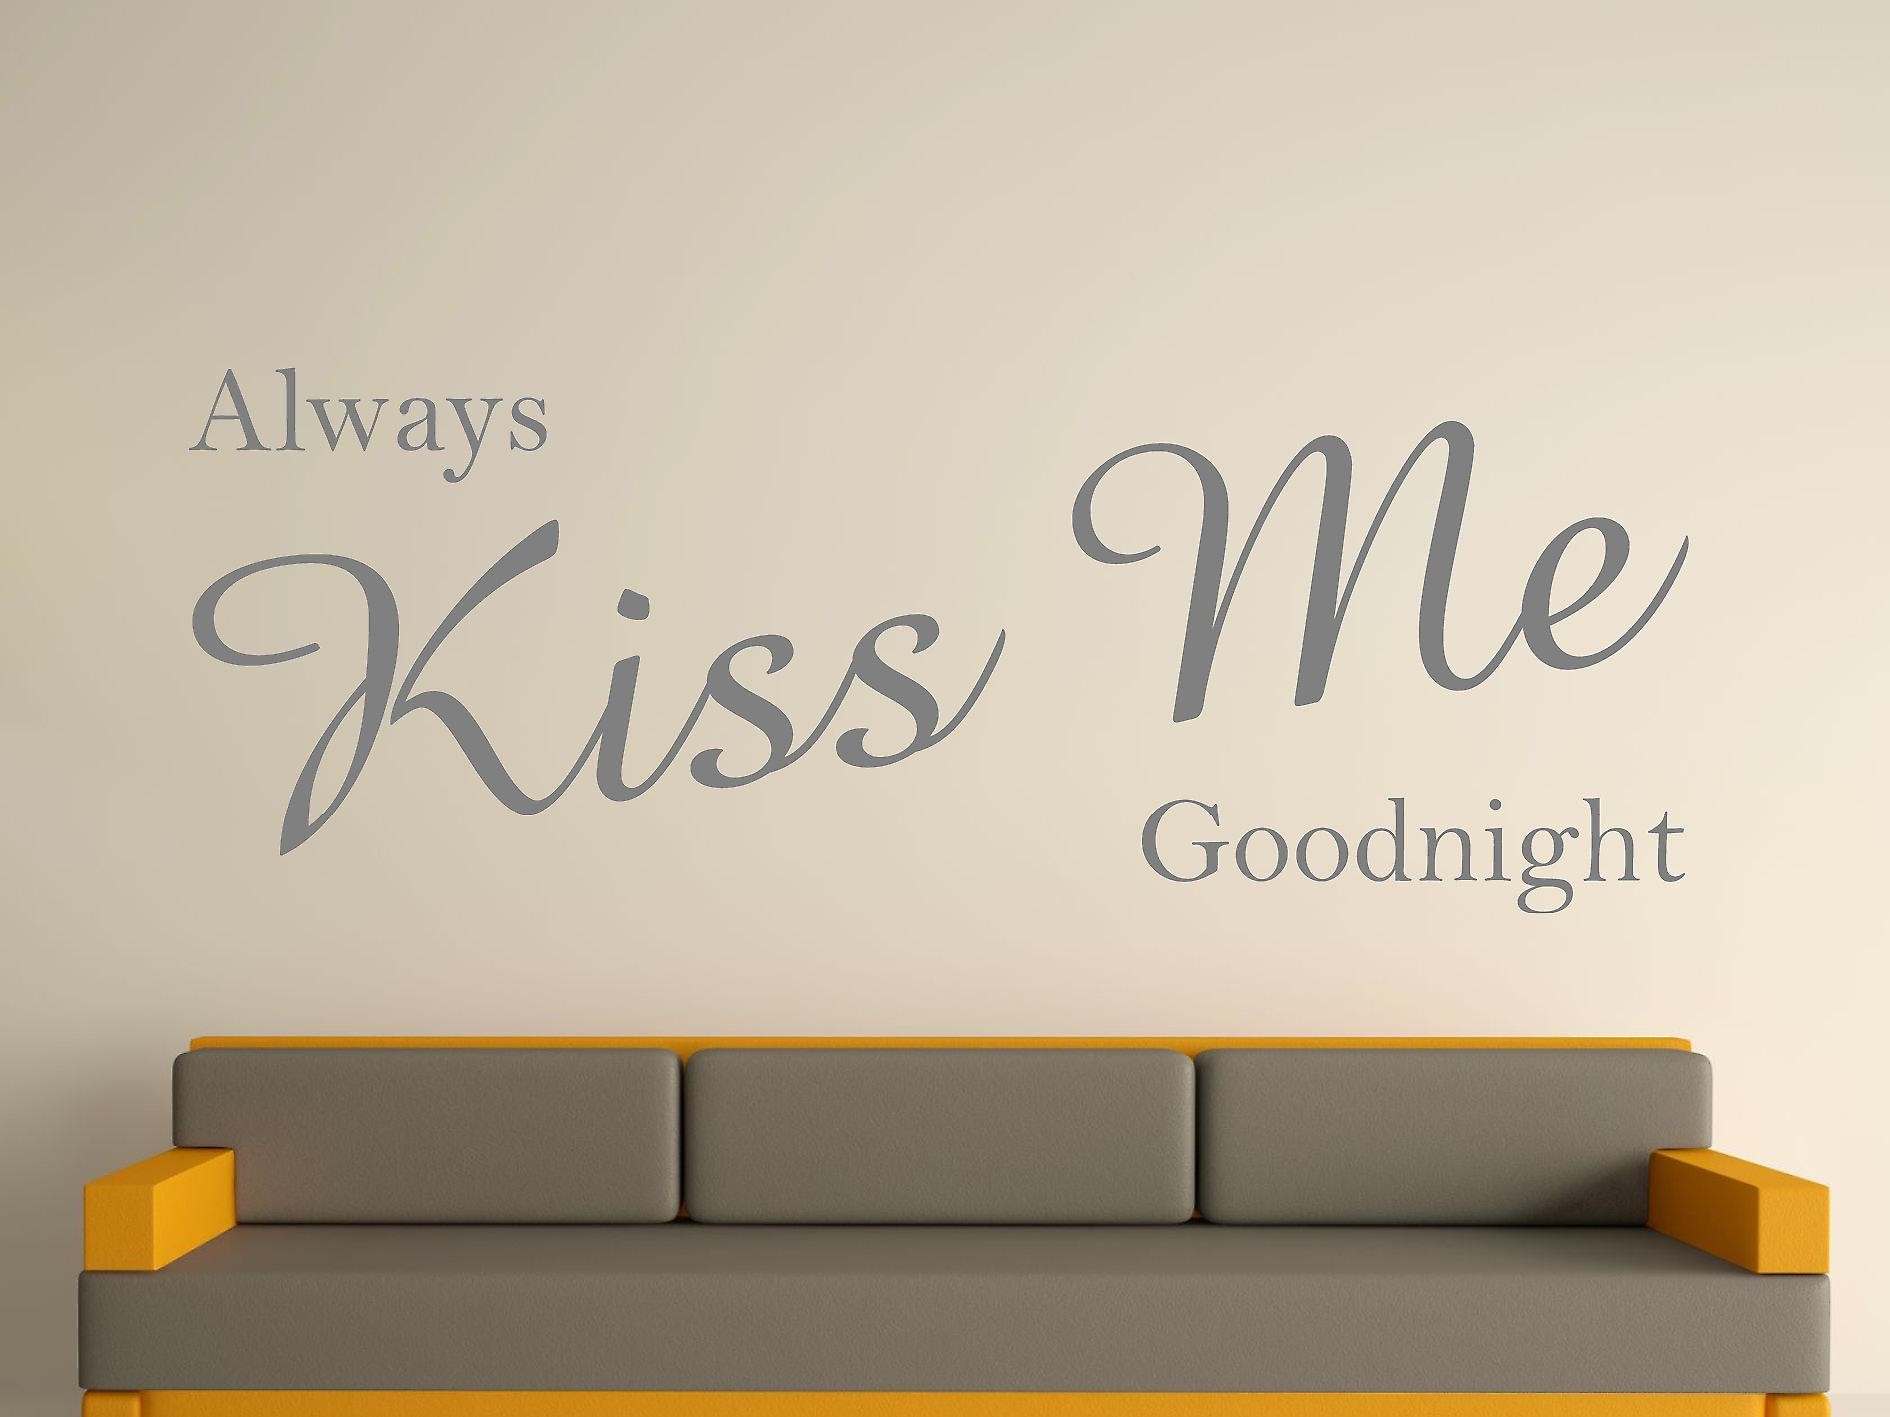 Always Kiss Me Goodnight Wall Art Sticker -  Grey